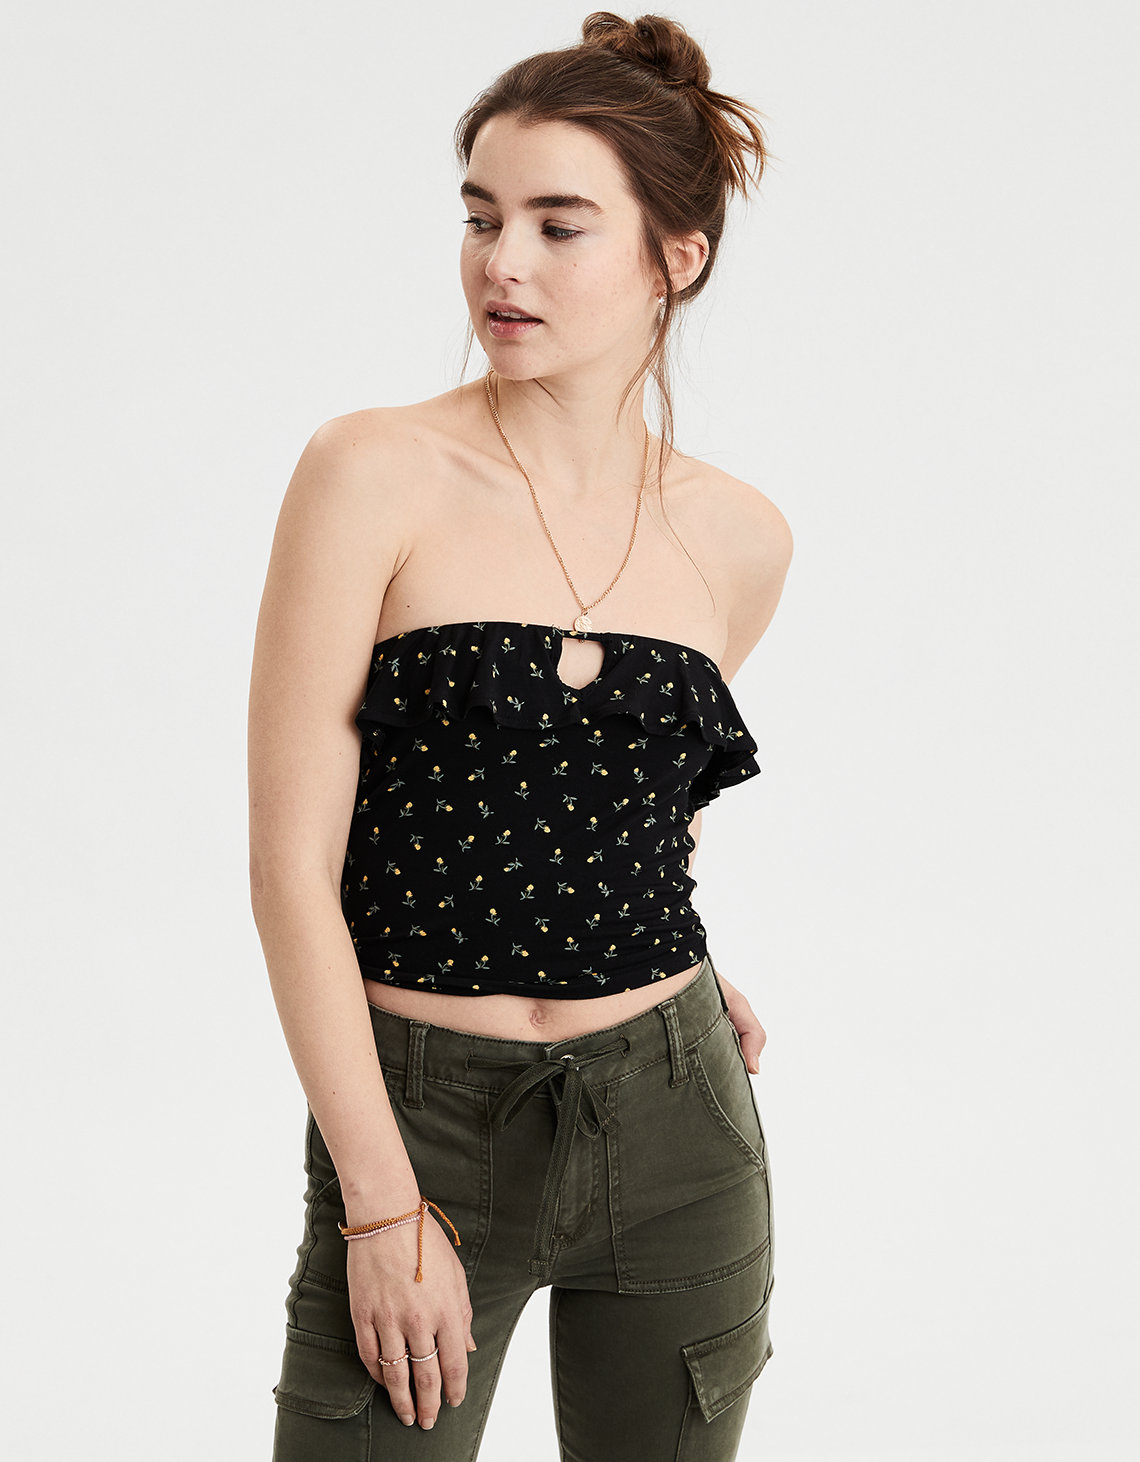 814576ee5a AE Soft   Sexy Ruffle Tube Top. Placeholder image. Product Image